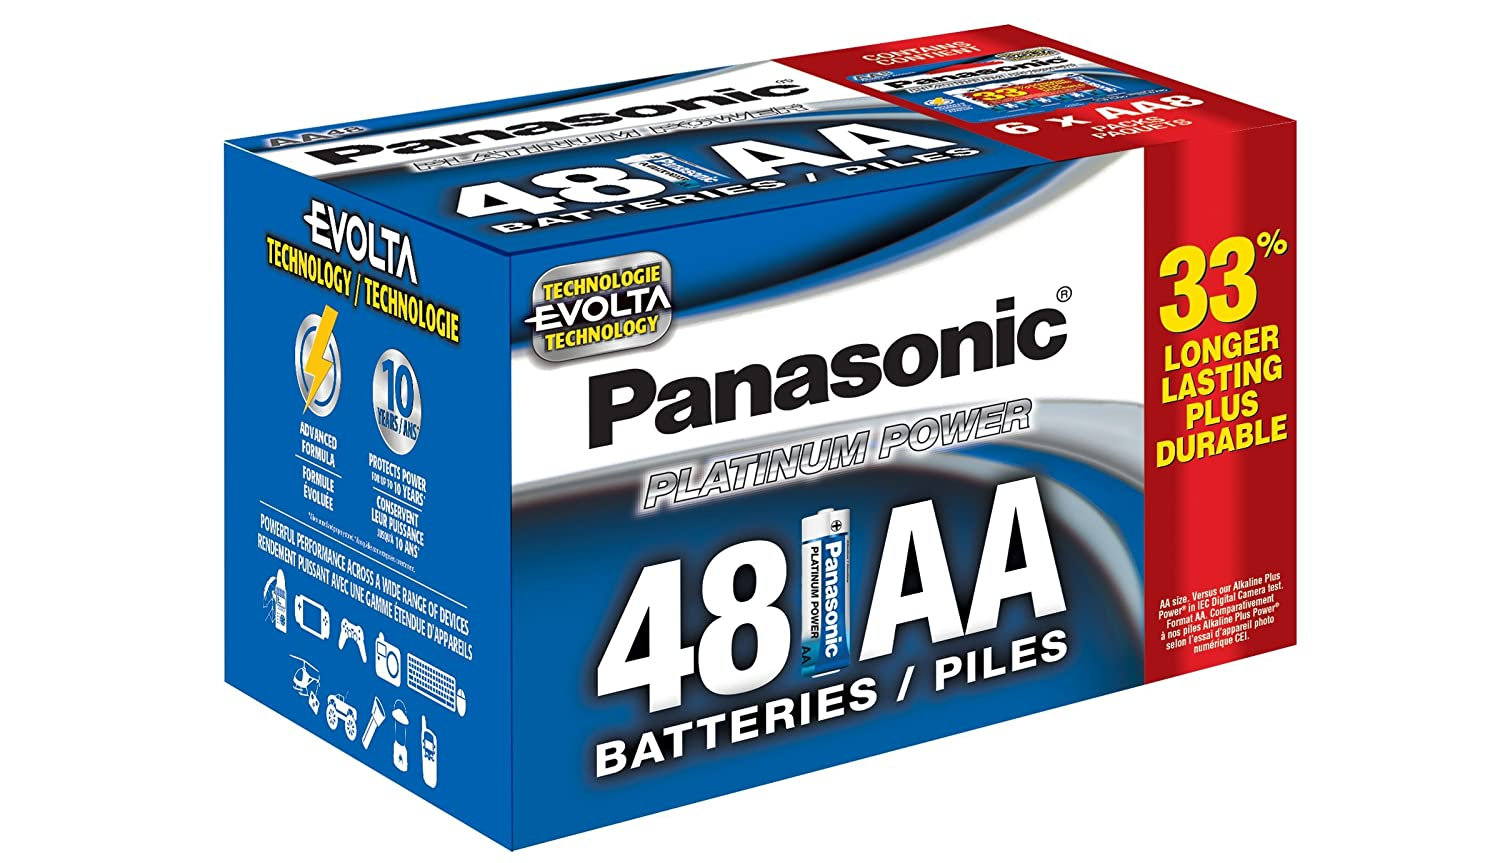 Batteries,Amazon.com